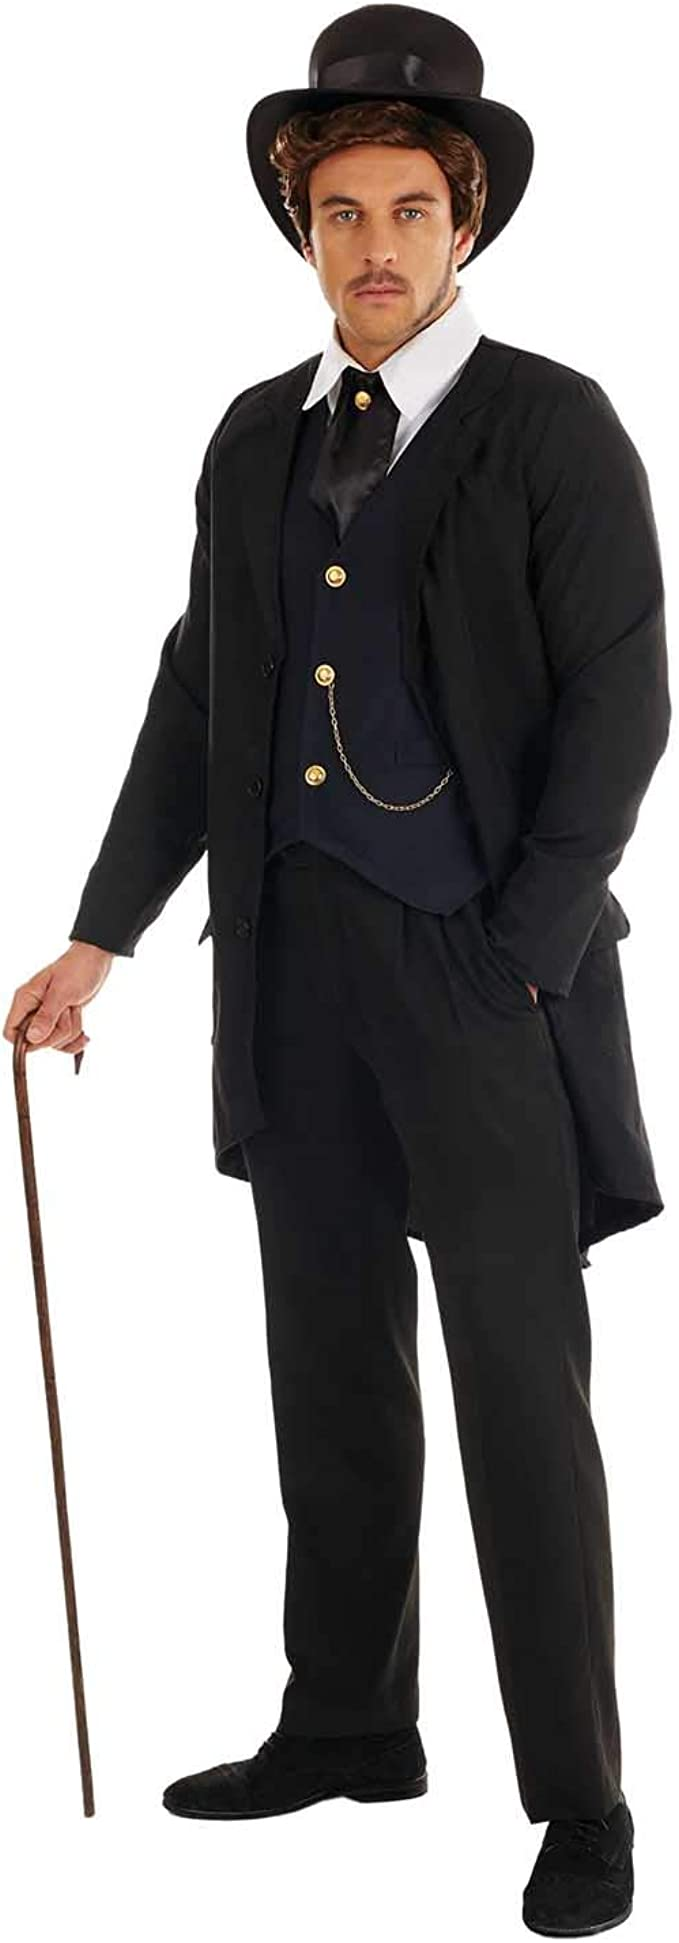 Victorian Mens Suits & Coats Adult Victorian Man Fancy Dress Costume £24.49 AT vintagedancer.com